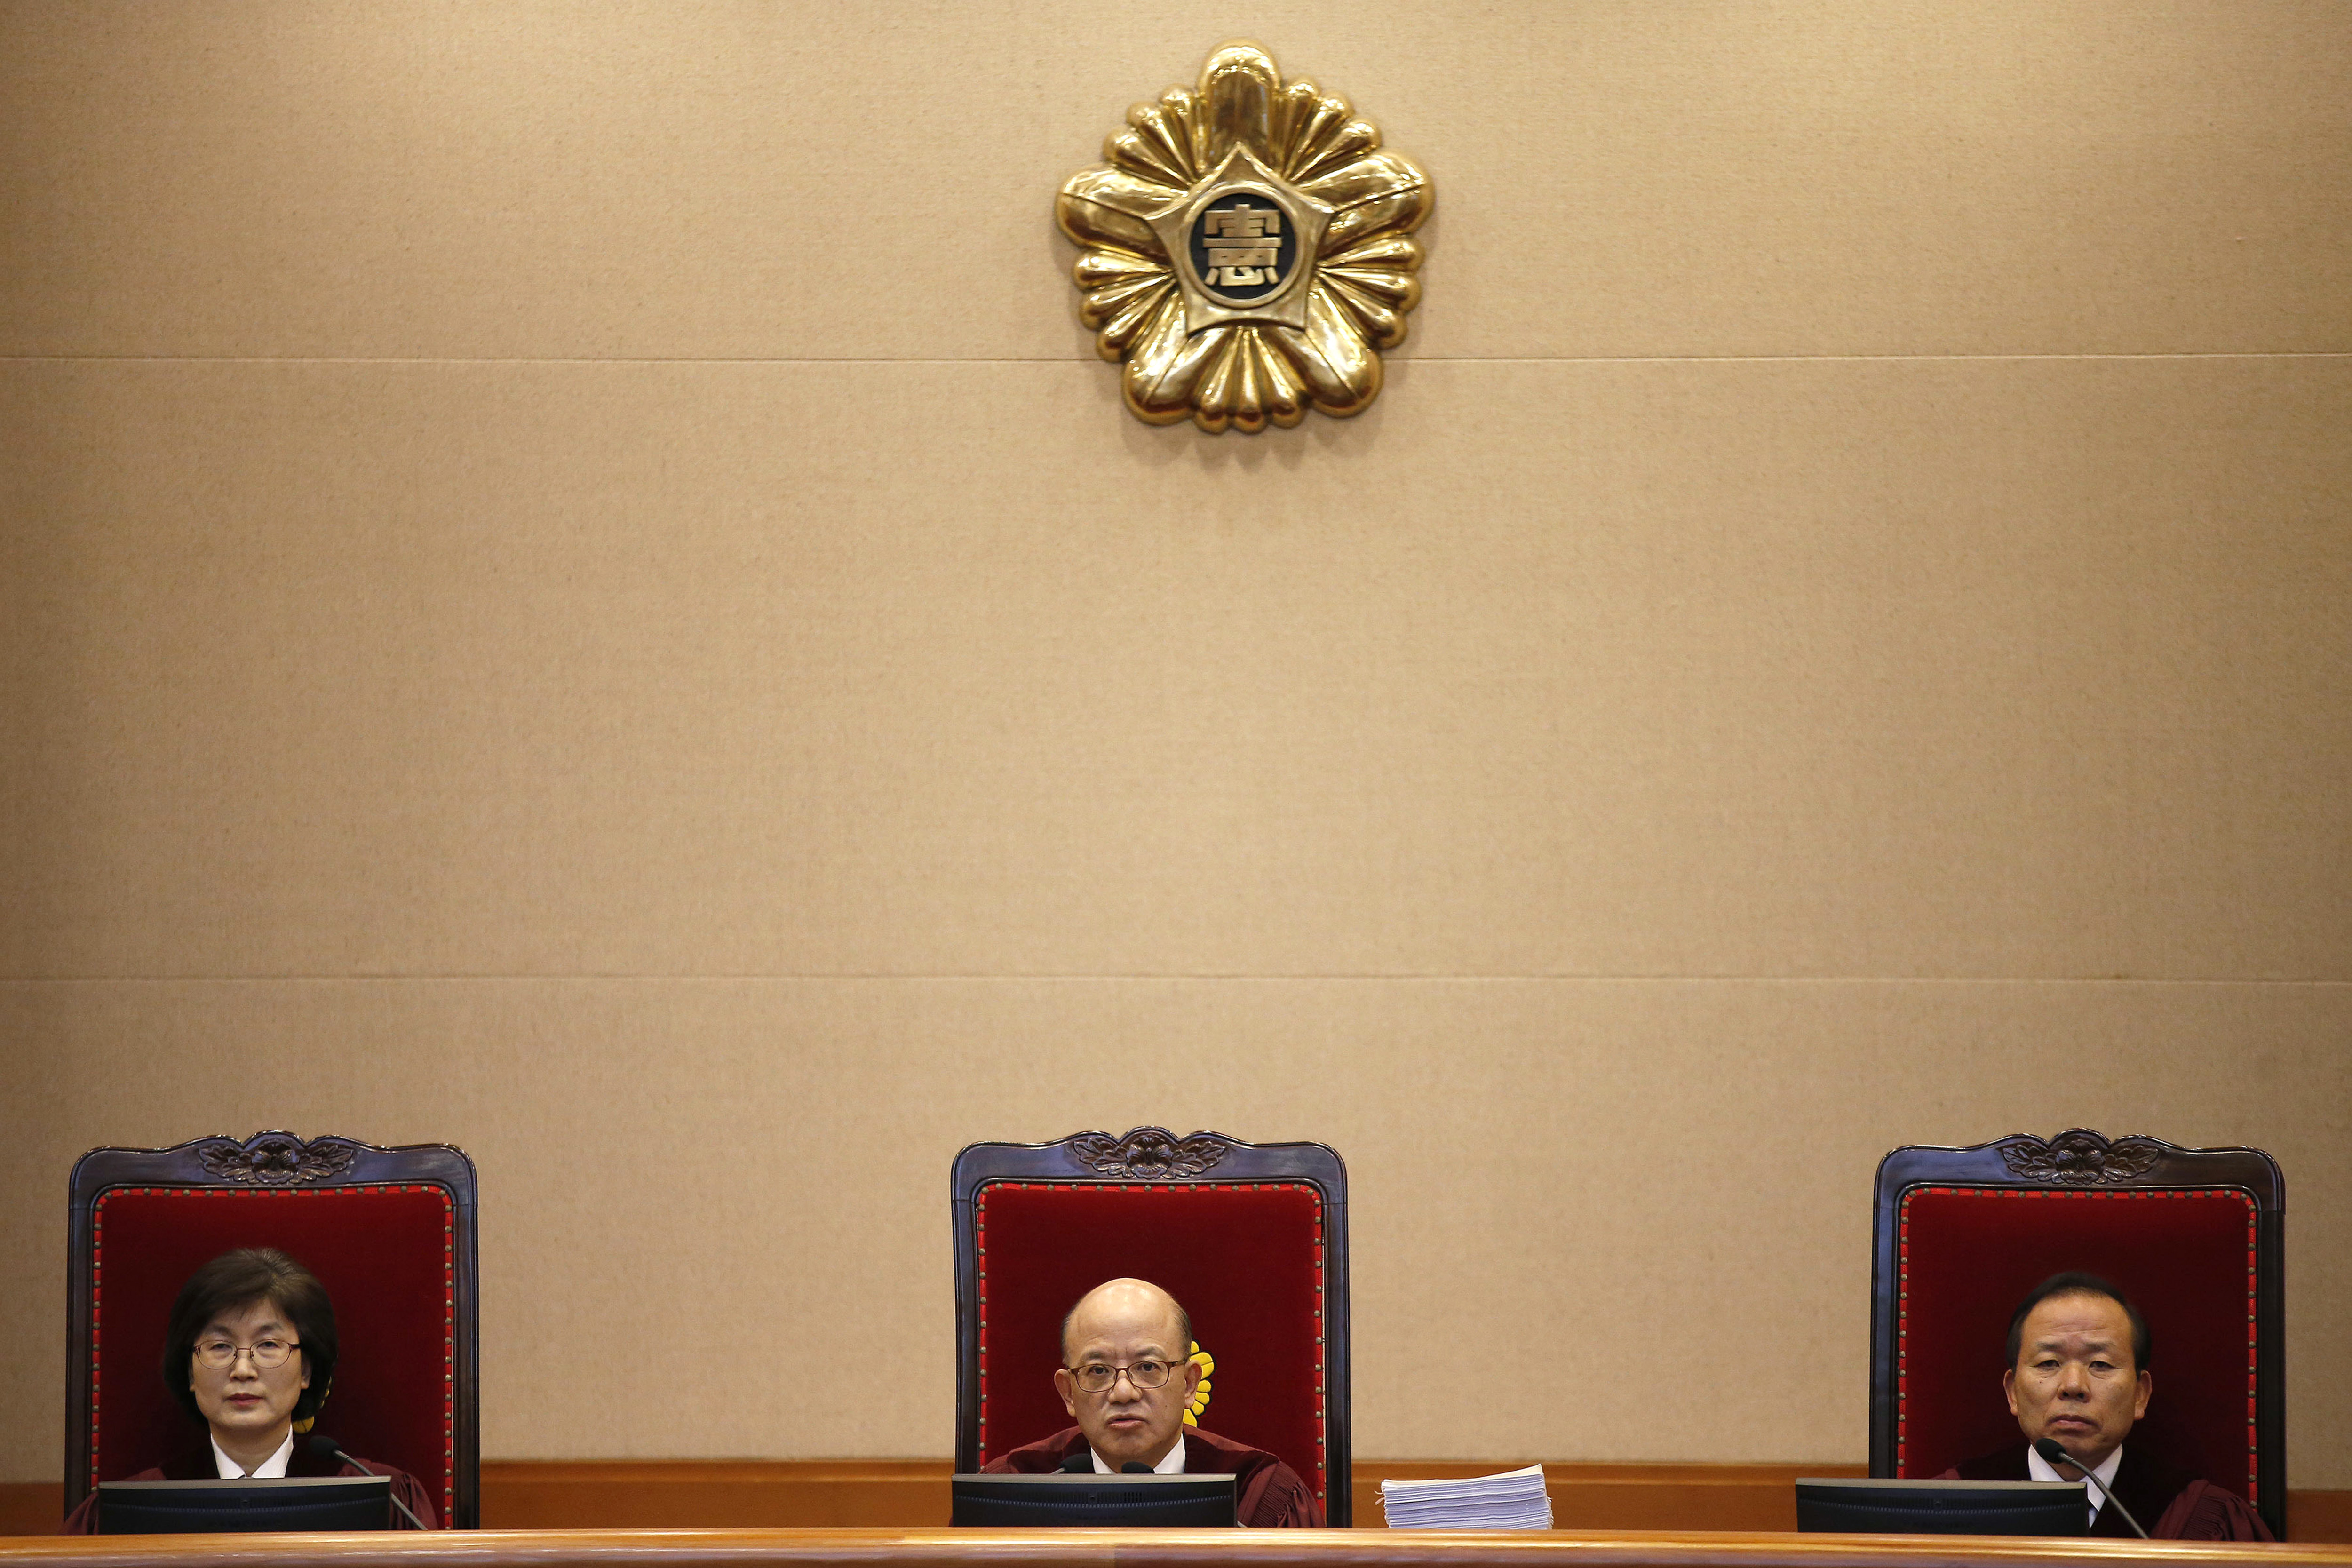 Chief Justice Park Han-chul, center, presides over the first hearing arguments for South Korean President Park Geun-hye's impeachment trial at the Constitutional Court in Seoul, South Korea, Tuesday, Jan 3, 2017. (Kim Hong-Ji/Pool Photo via AP)